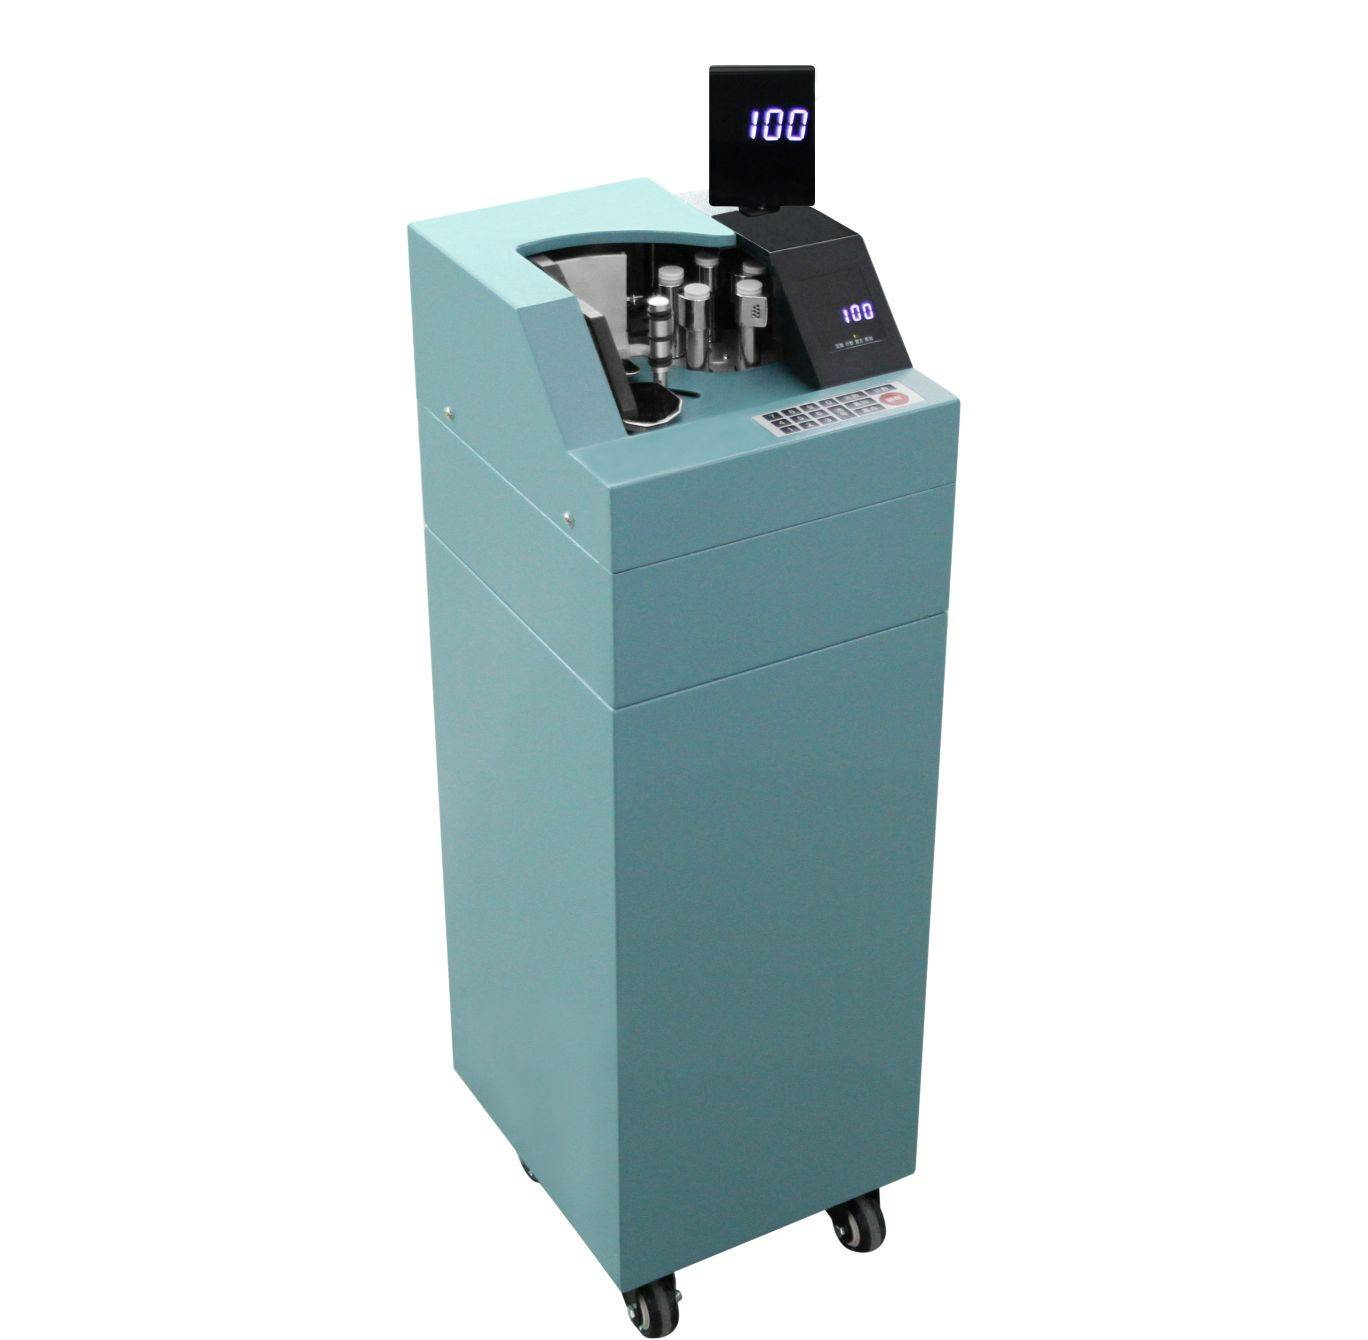 FDJ-126 Vacuum Money Counter With Dust Cover And UV